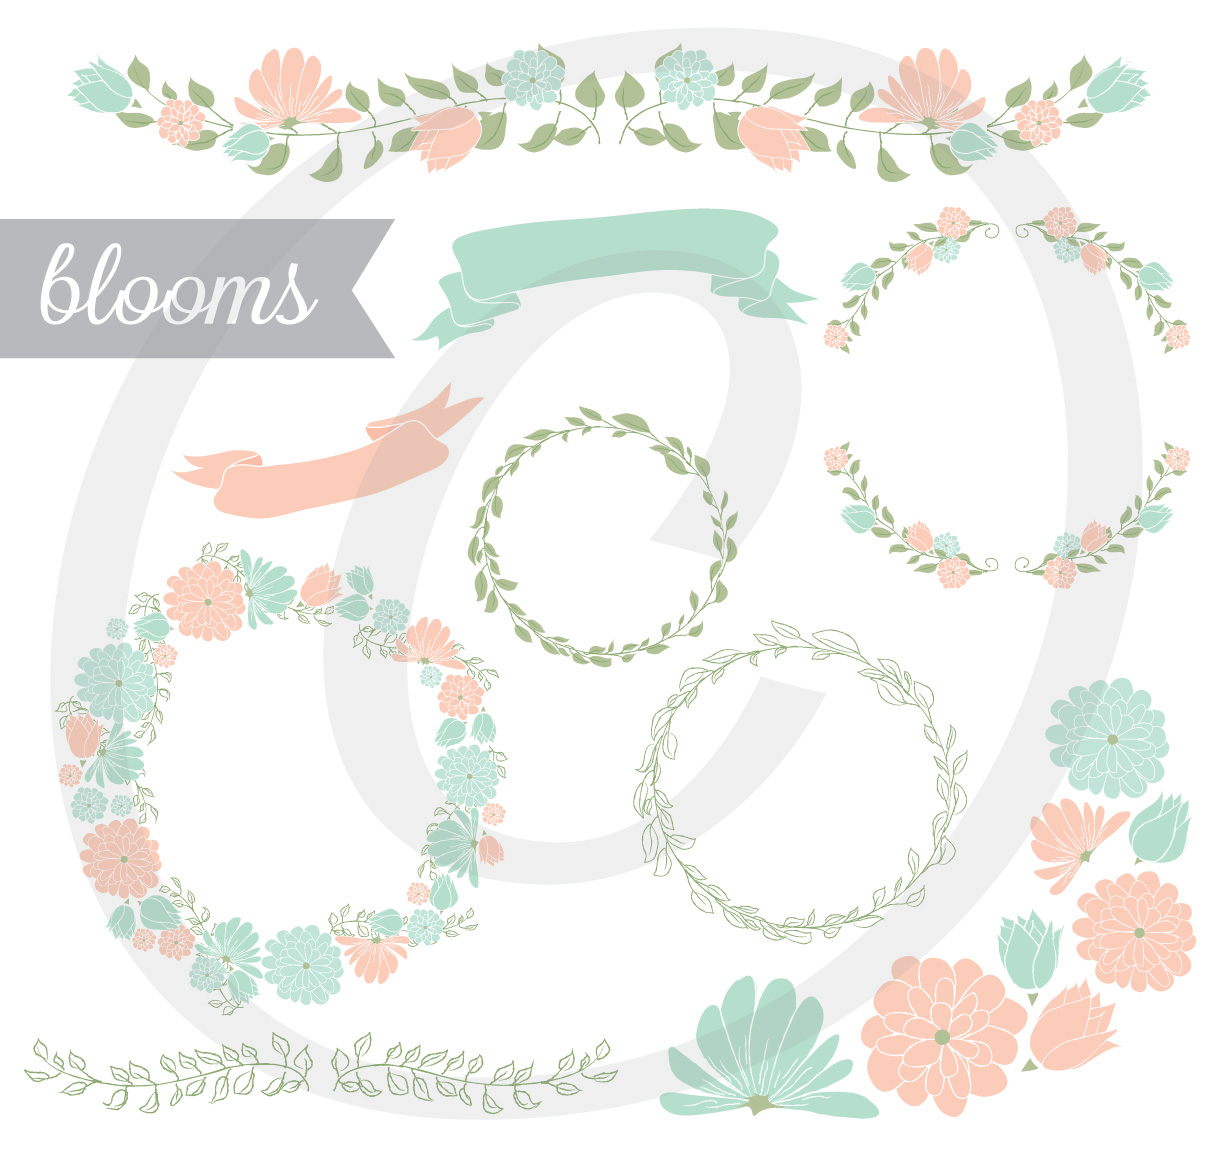 Blooms - Floral Element Set